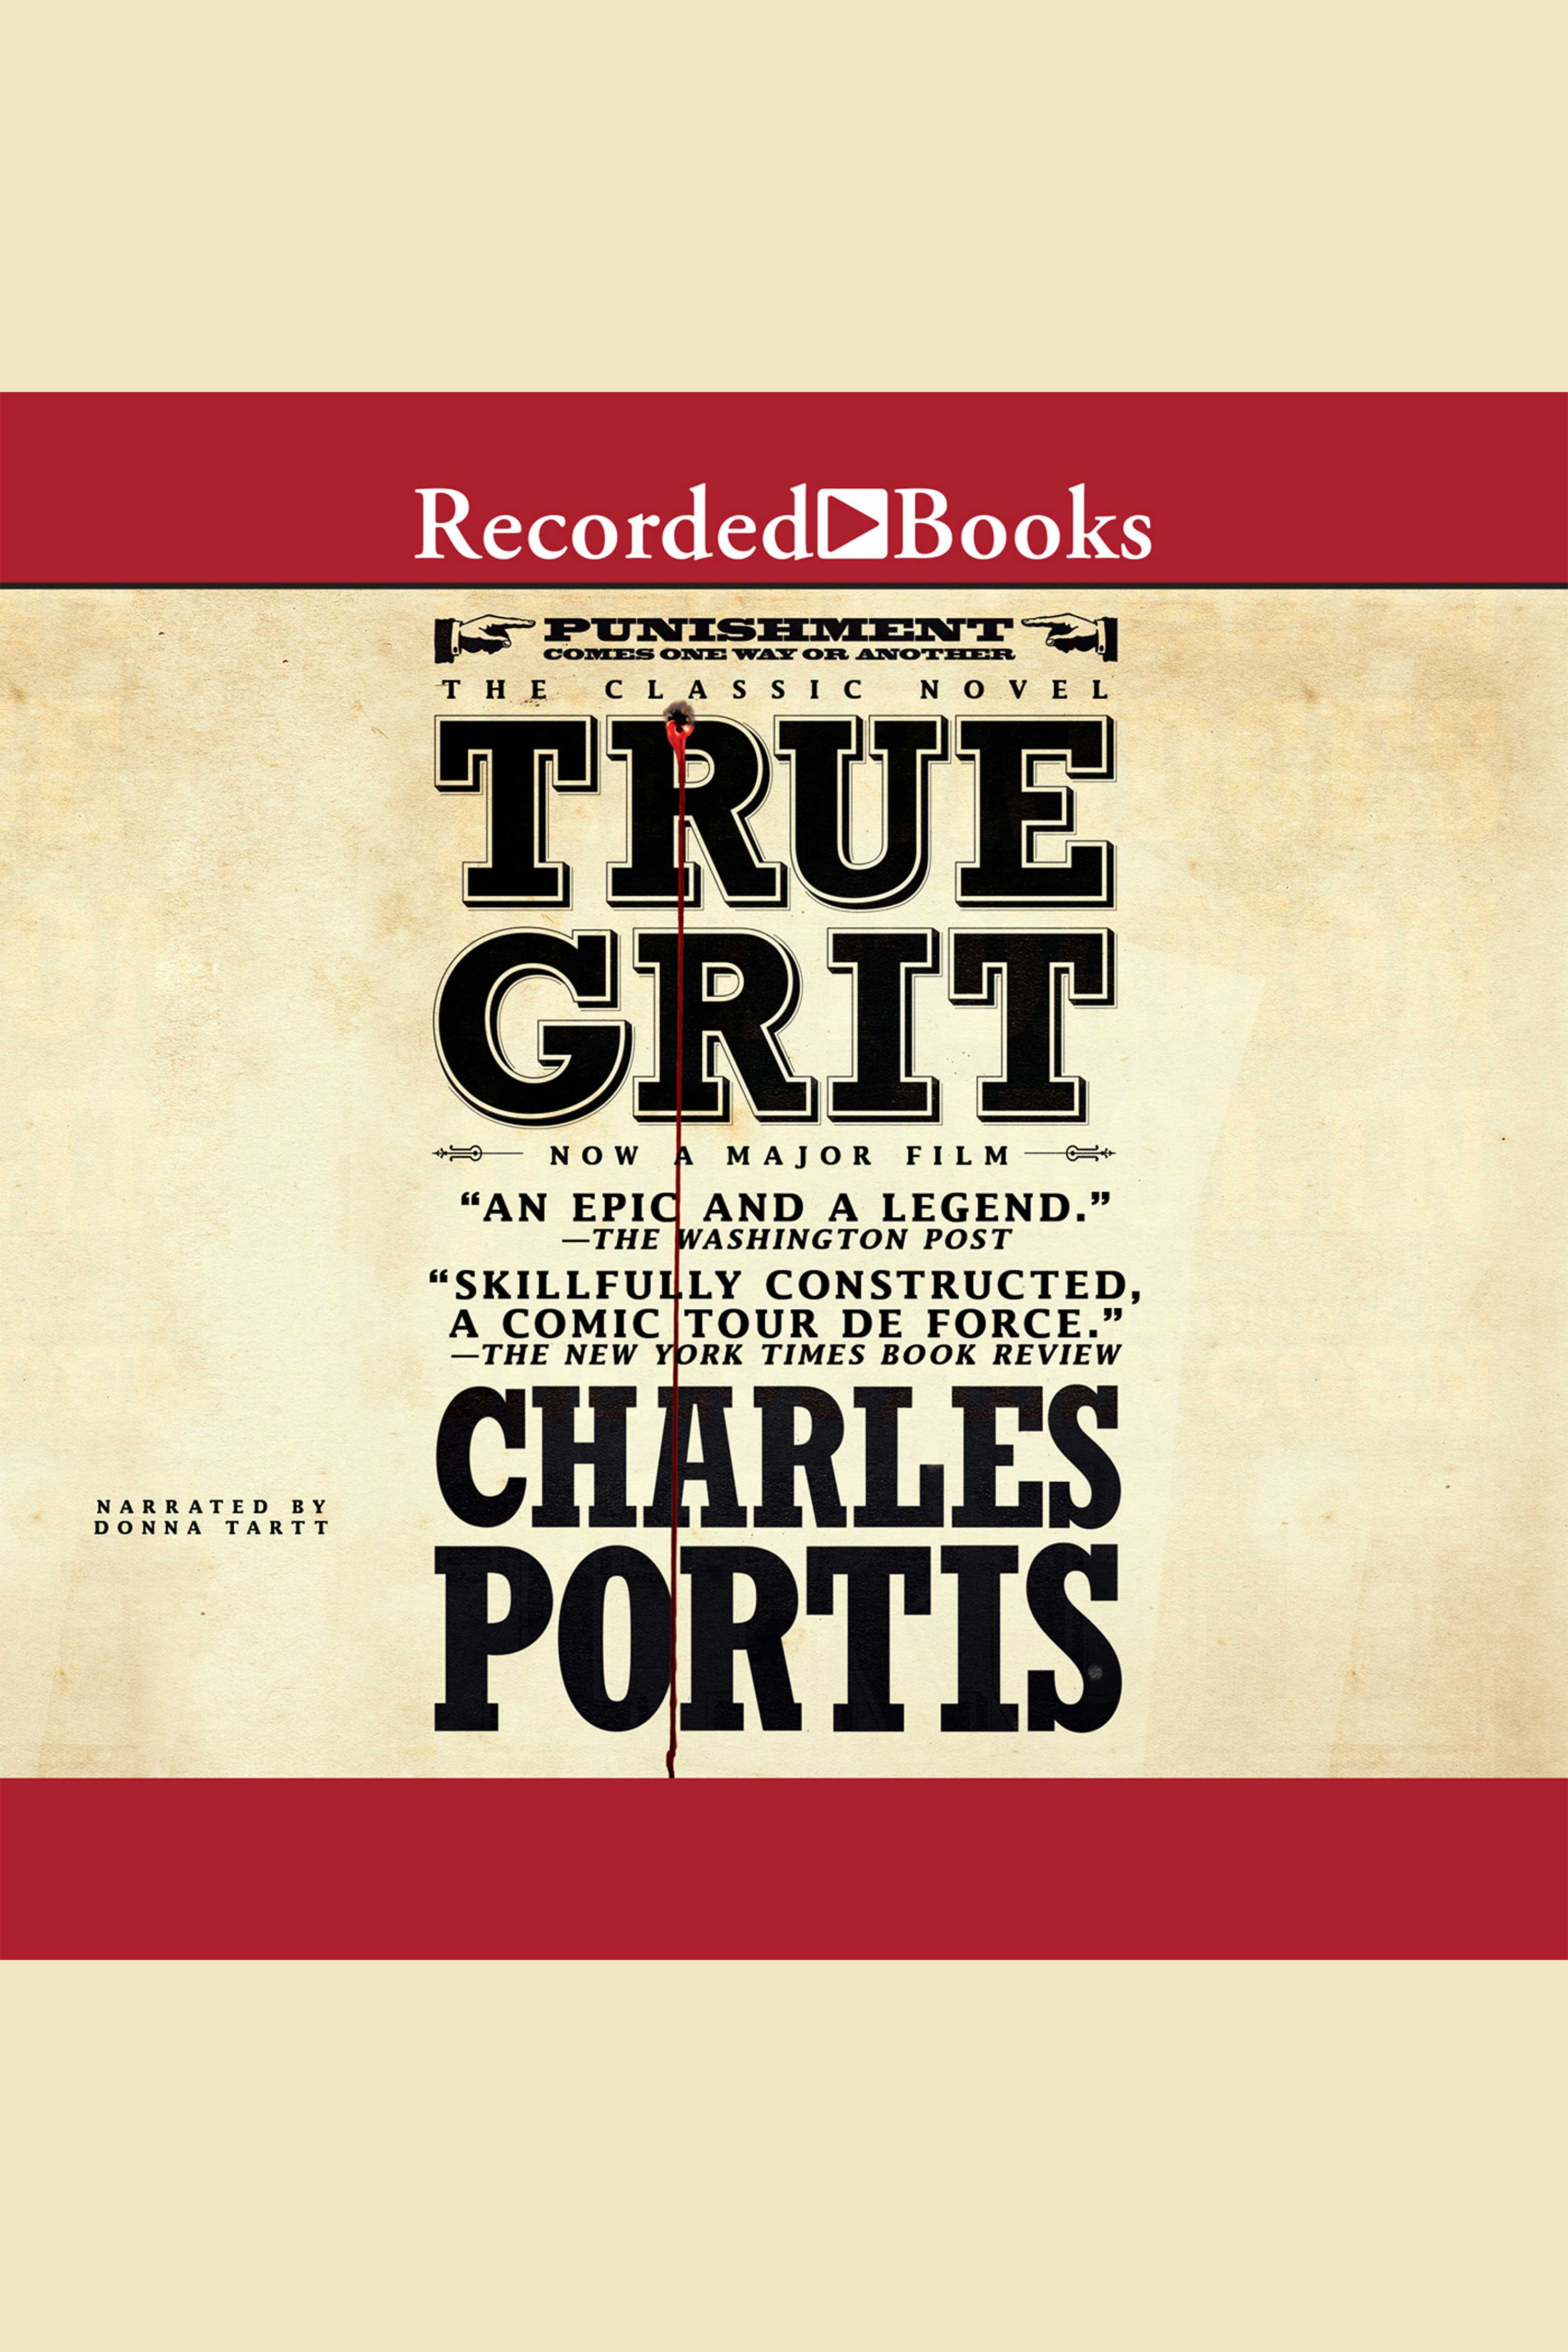 True grit cover image